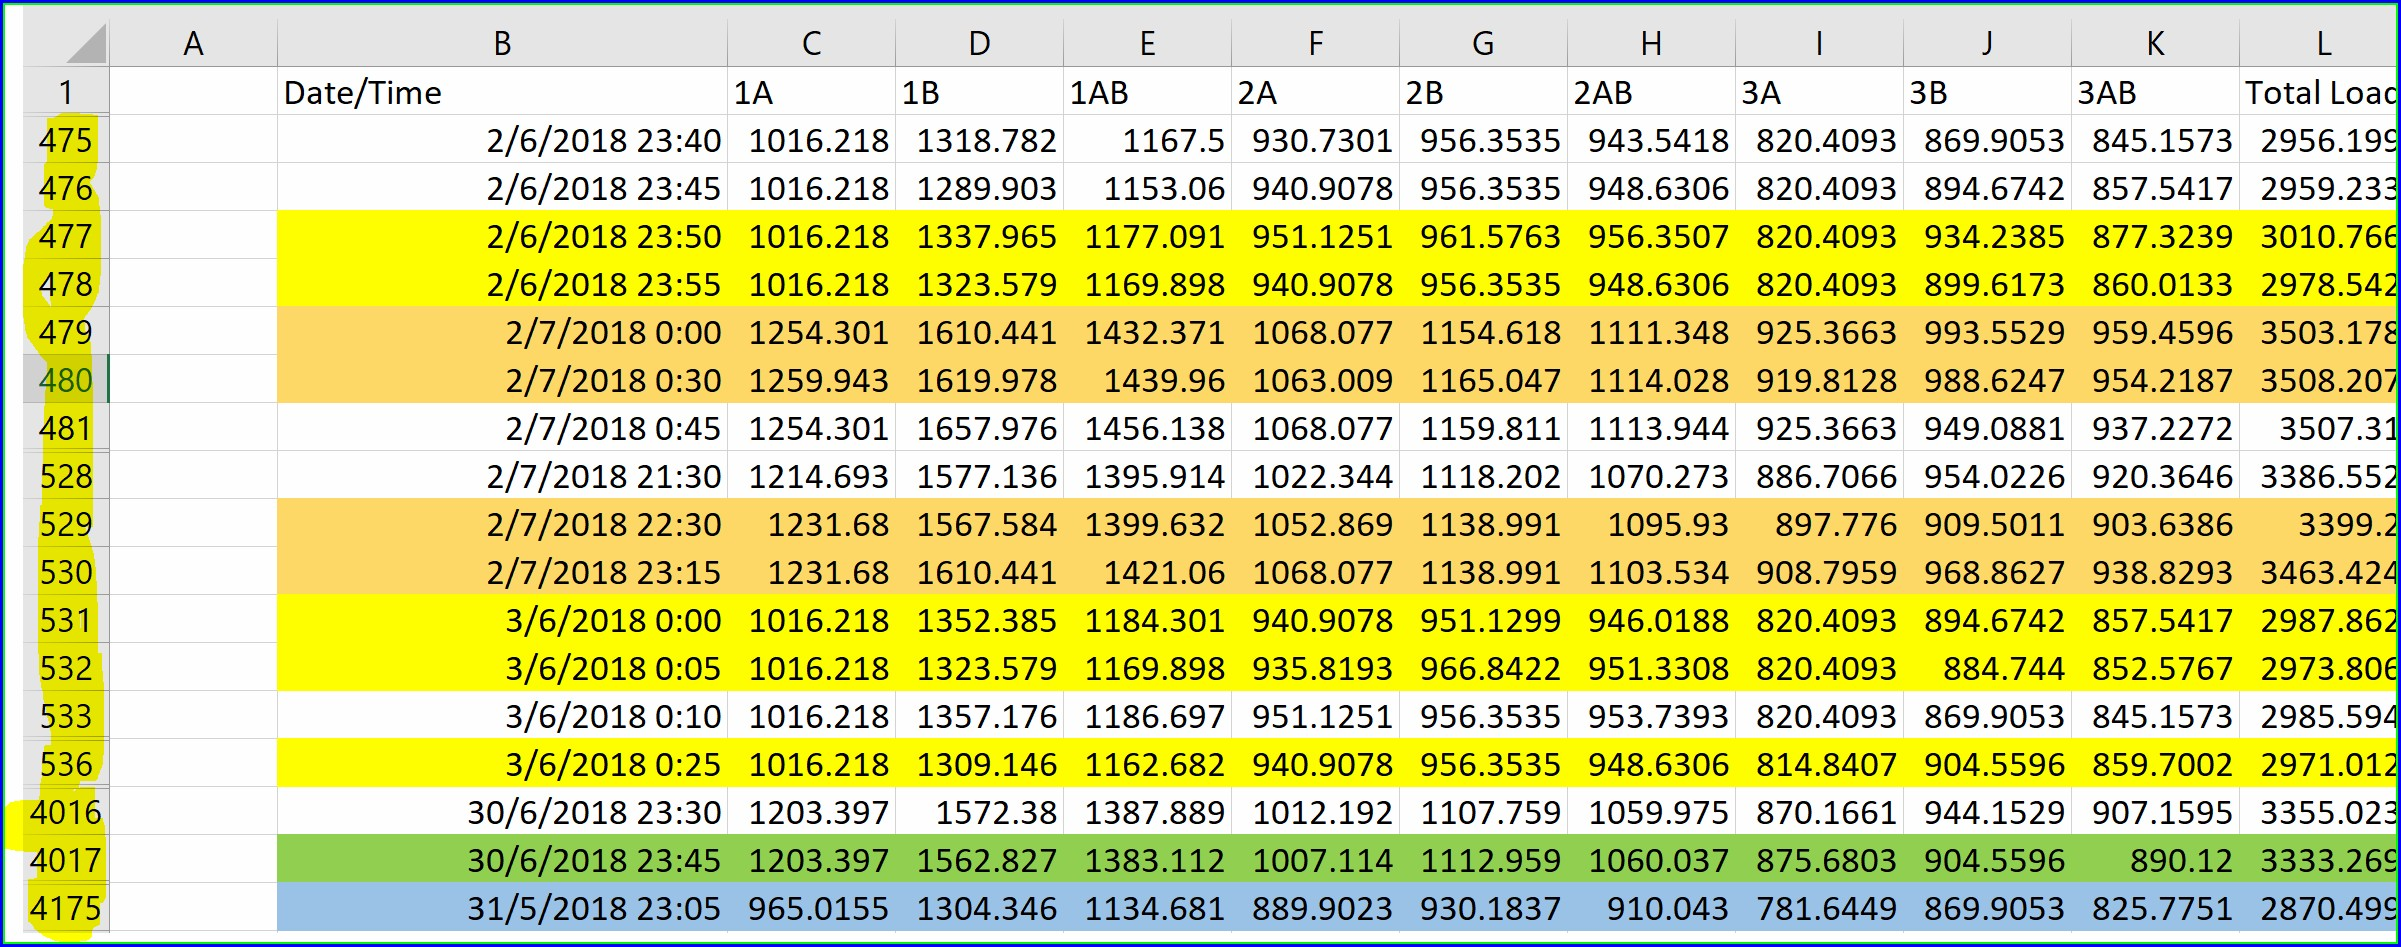 Excel Vba Sort Dates